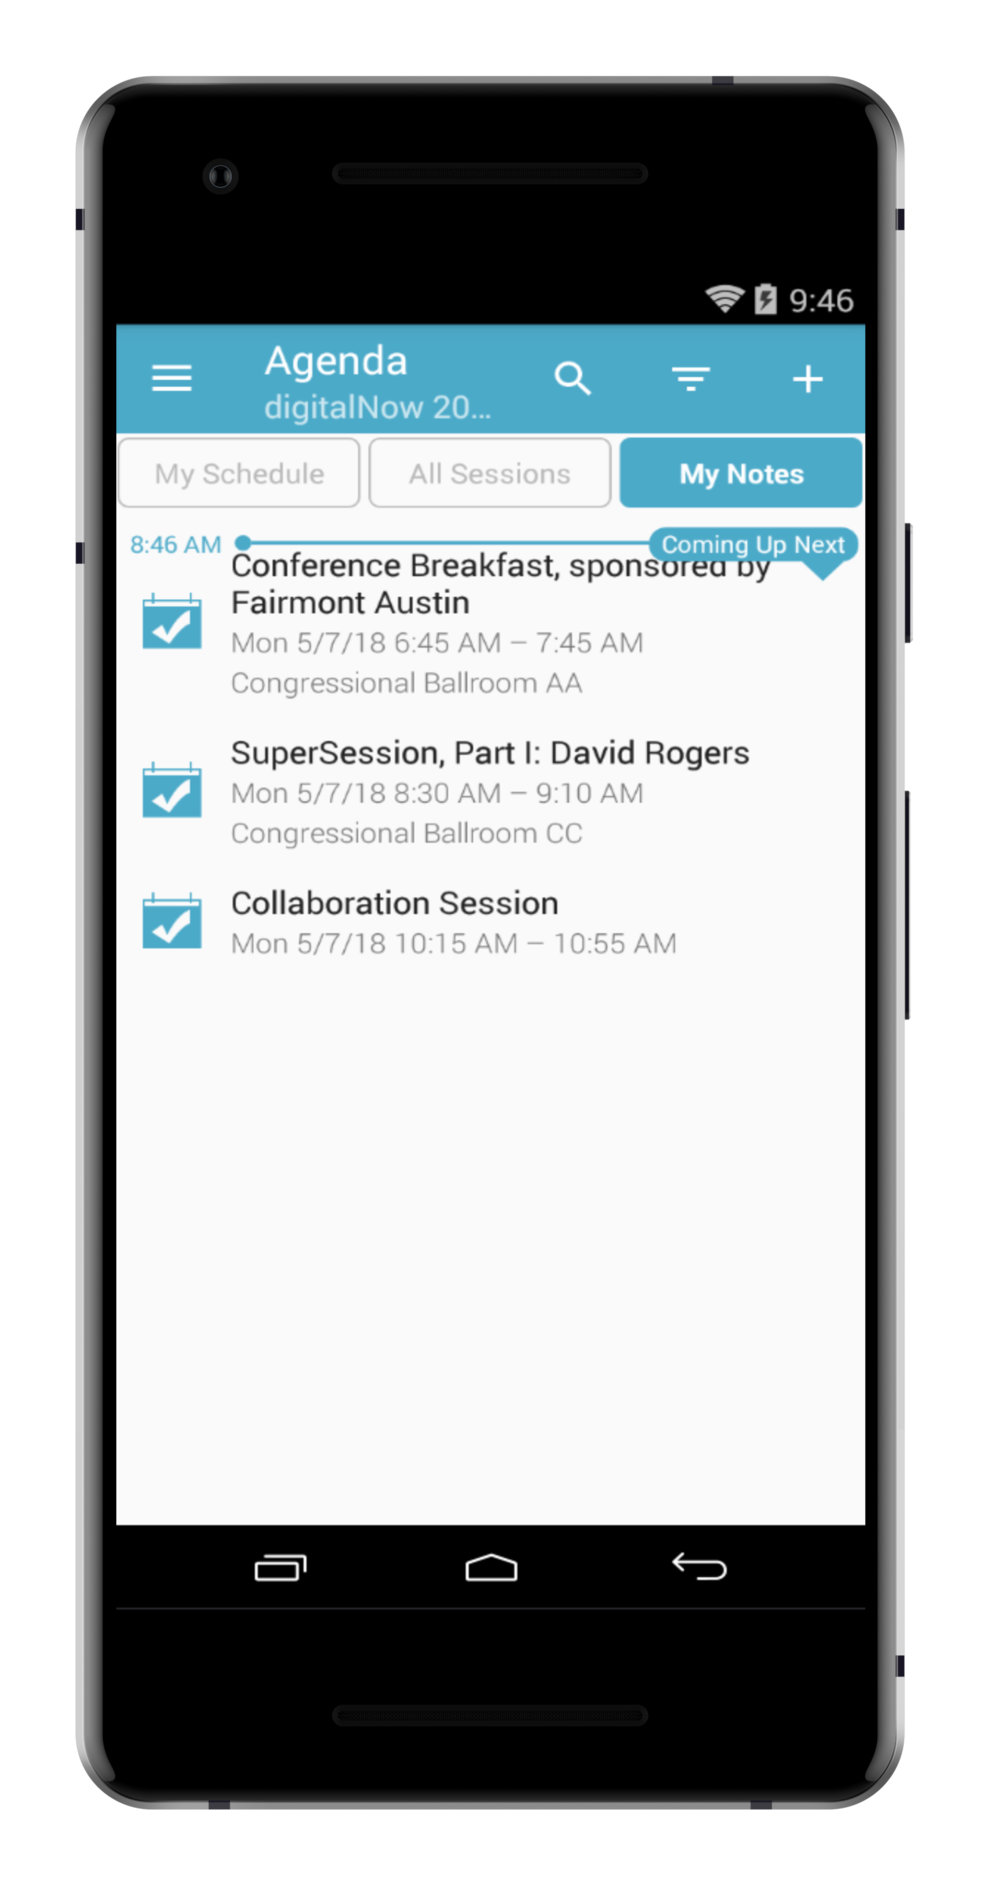 step 5. - TO SEE ALL OF YOUR NOTES ON ALL SESSIONS, CLICK 'MY NOTES' FROM THE AGENDA.